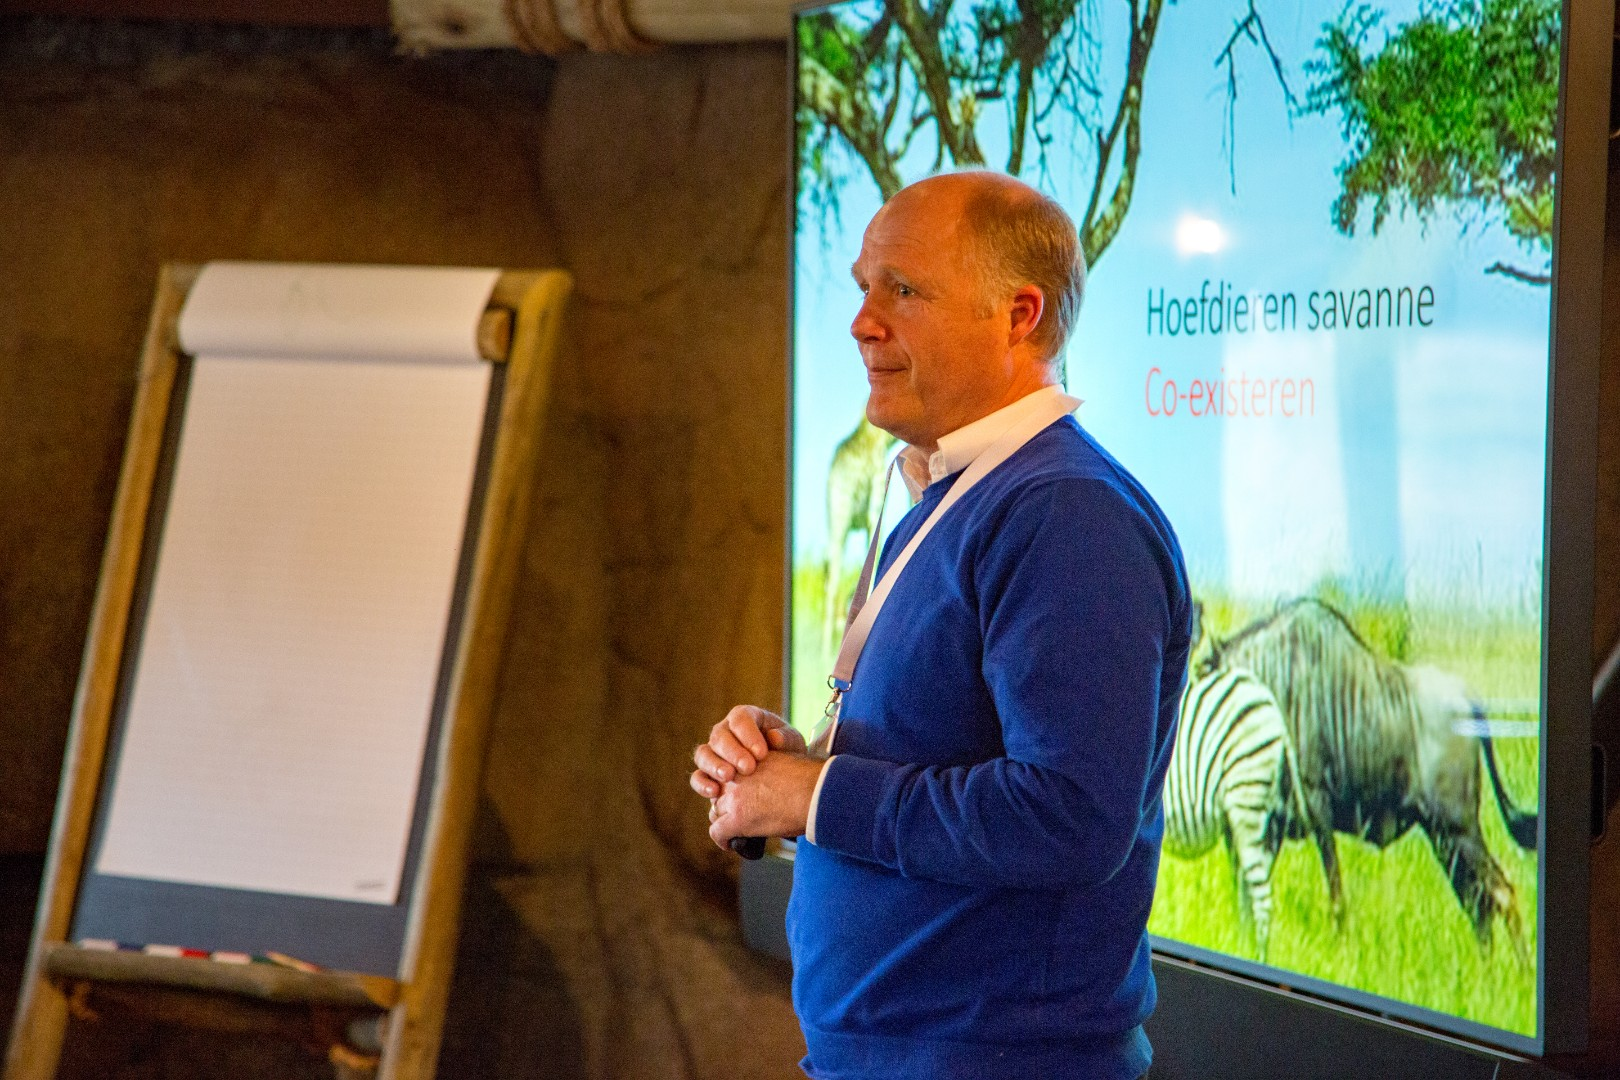 presentatie, burgers zoo, evenement, evenement organiseren